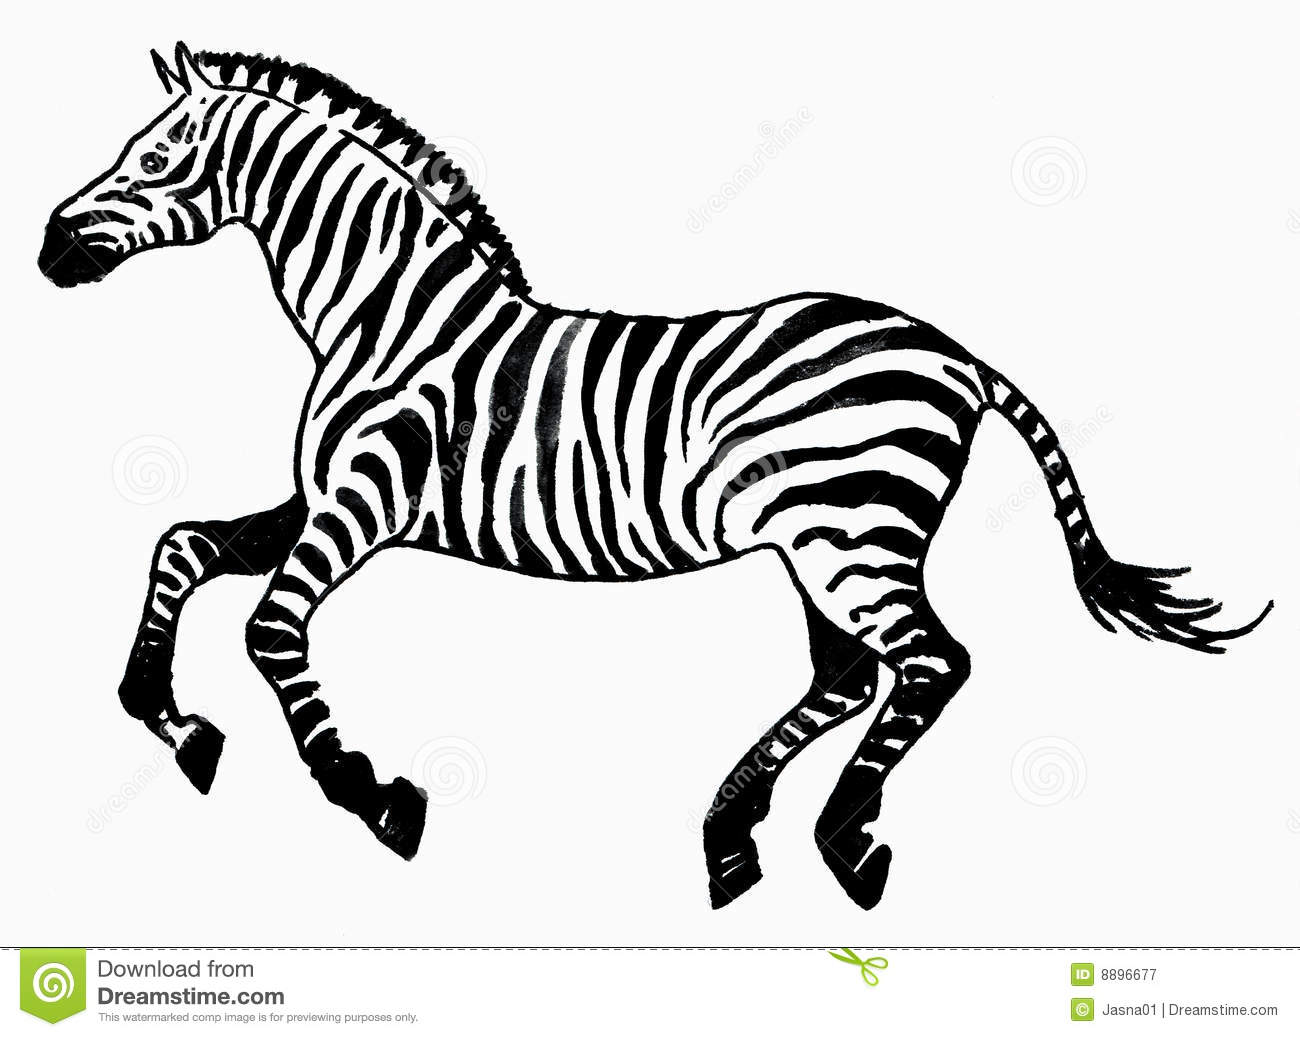 Zebra Animal Royalty Free Stock Photography